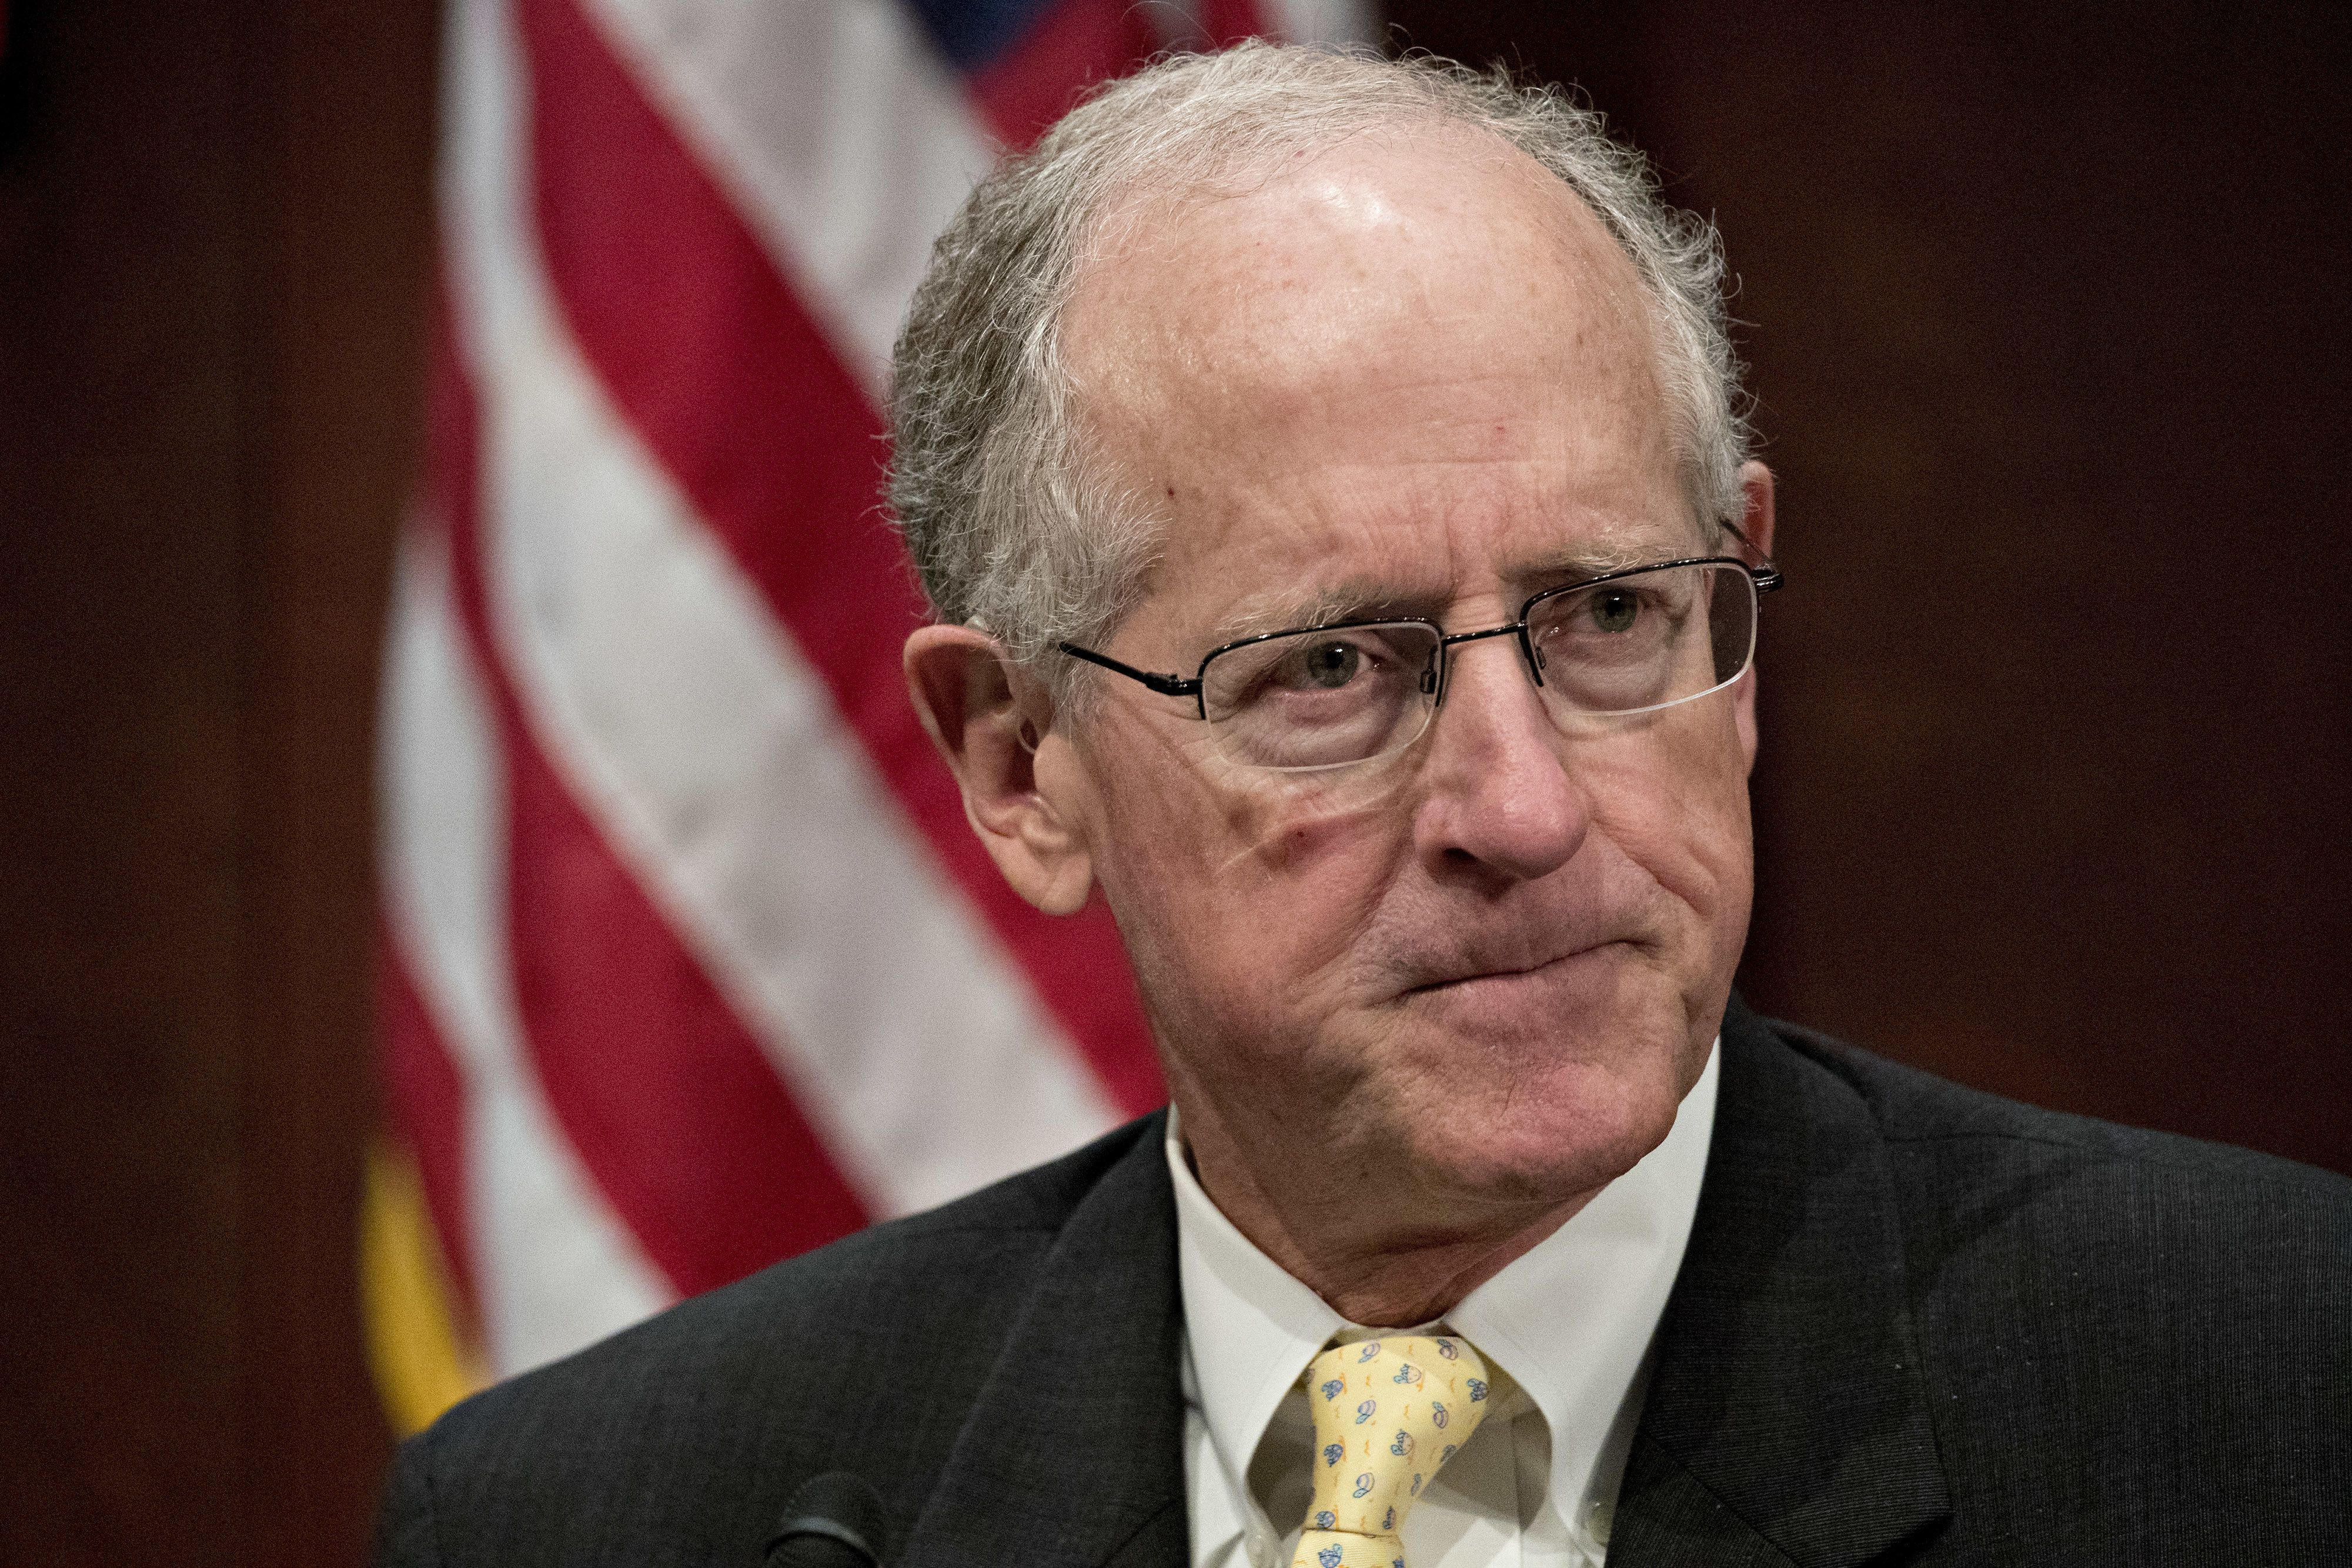 Representative Mike Conaway, a Republican from Texas, waits to chair a House Intelligence Committee hearing in Washington, D.C., U.S., on Wednesday, Nov. 1, 2017. The top Democrat on the Senate Intelligence Committee berated lawyers today for social media giants Facebook, Twitter and Google for a lethargic response to Russian interference in U.S. politics, as the companies' lawyers faced a second day of grilling in Congress. Photographer: Andrew Harrer/Bloomberg via Getty Images